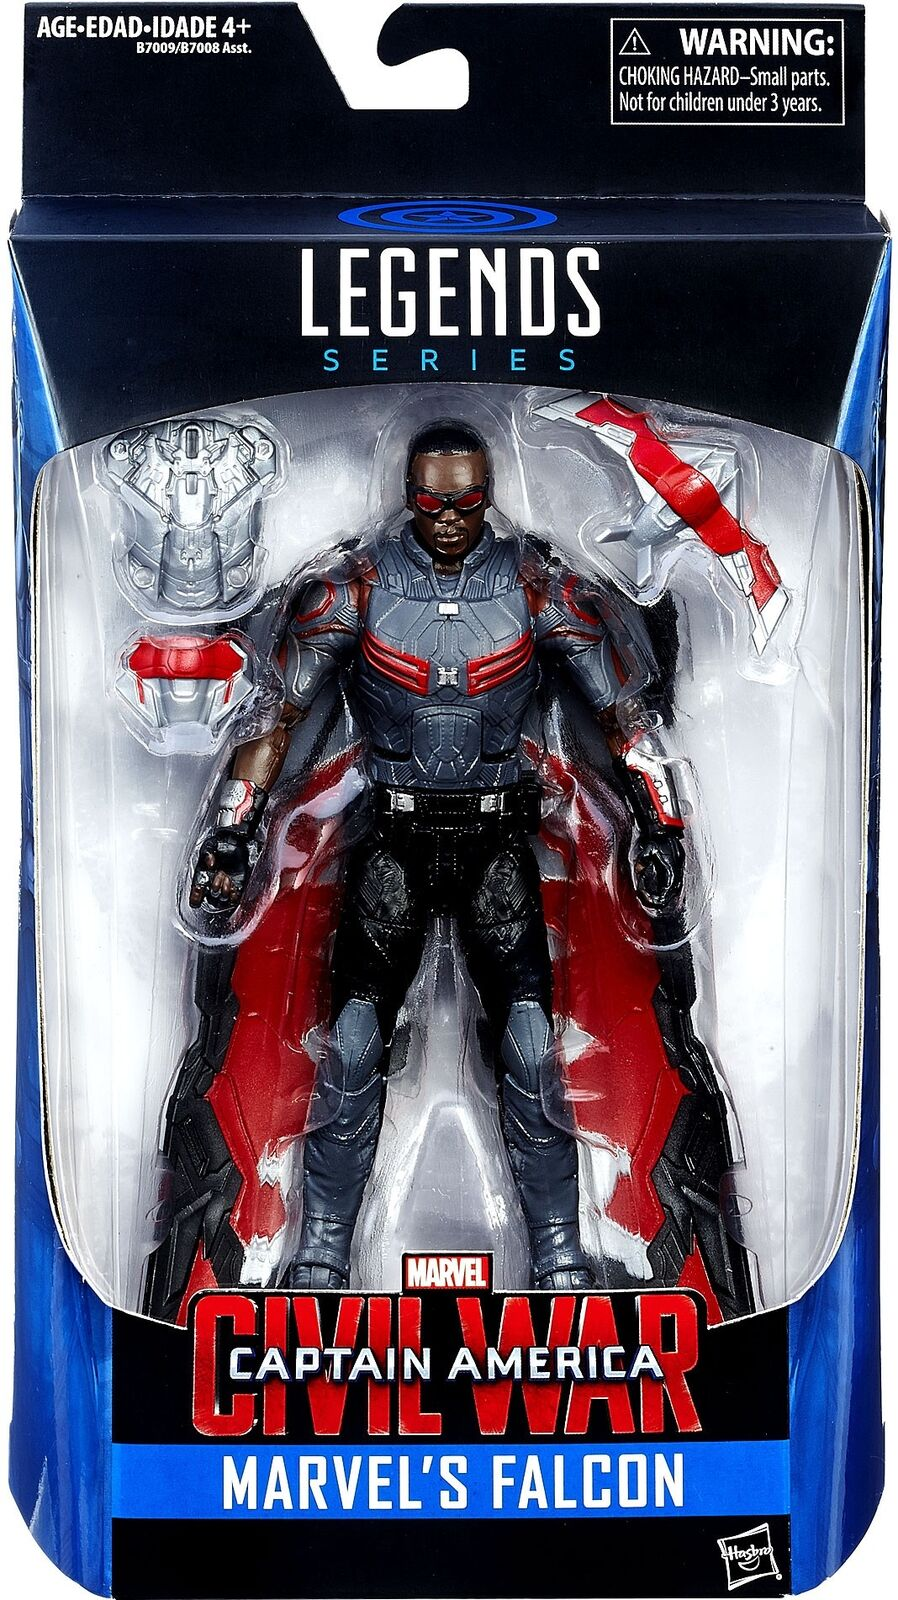 Captain america bürgerkrieg marvel - legenden marvel ist falcon exklusive action - figur